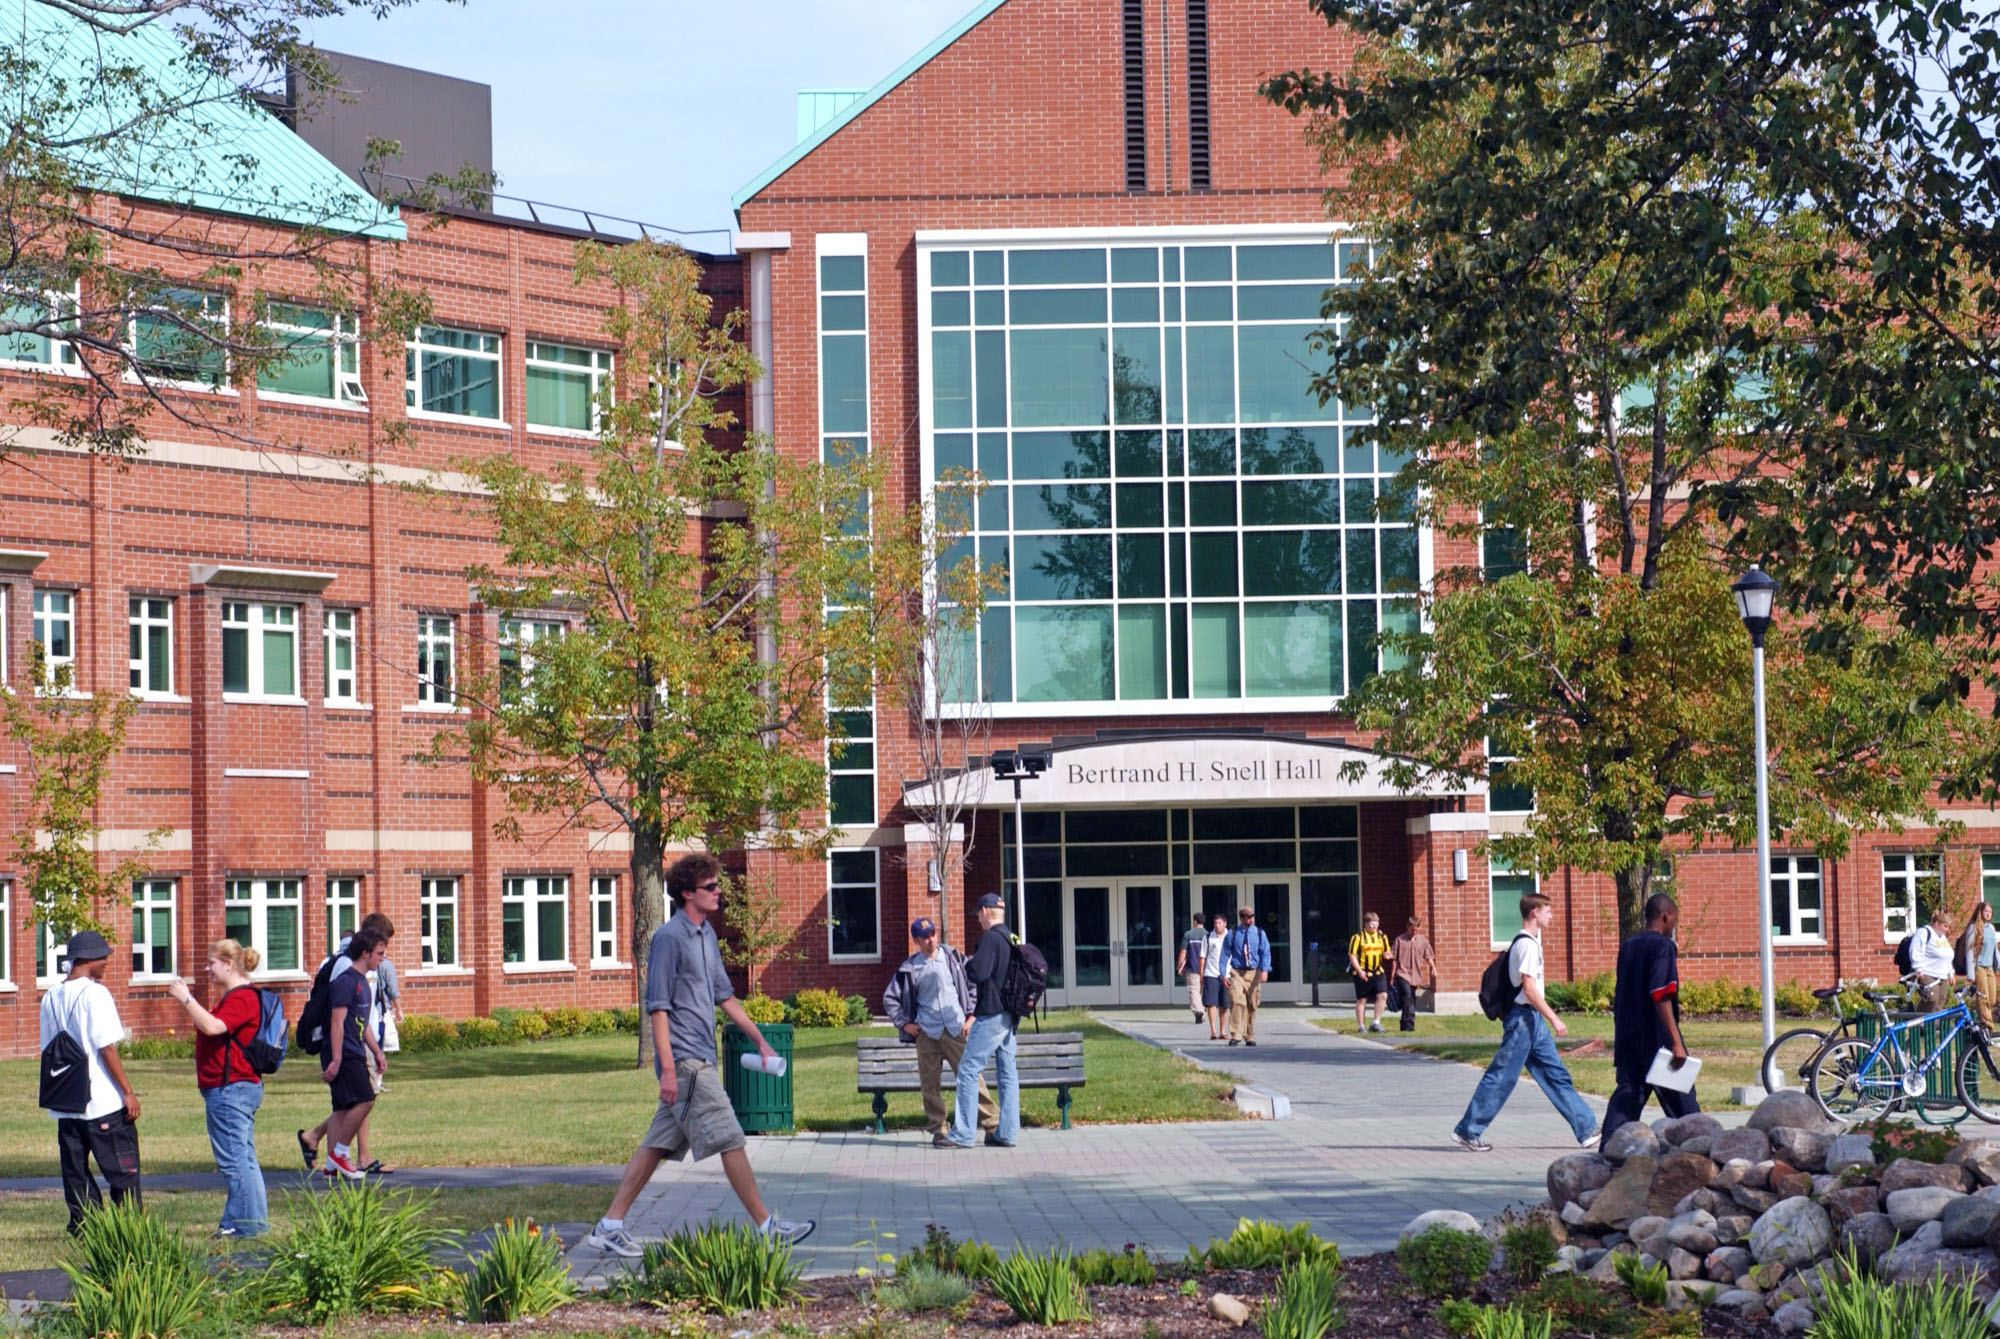 Students on campus at Clarkson University